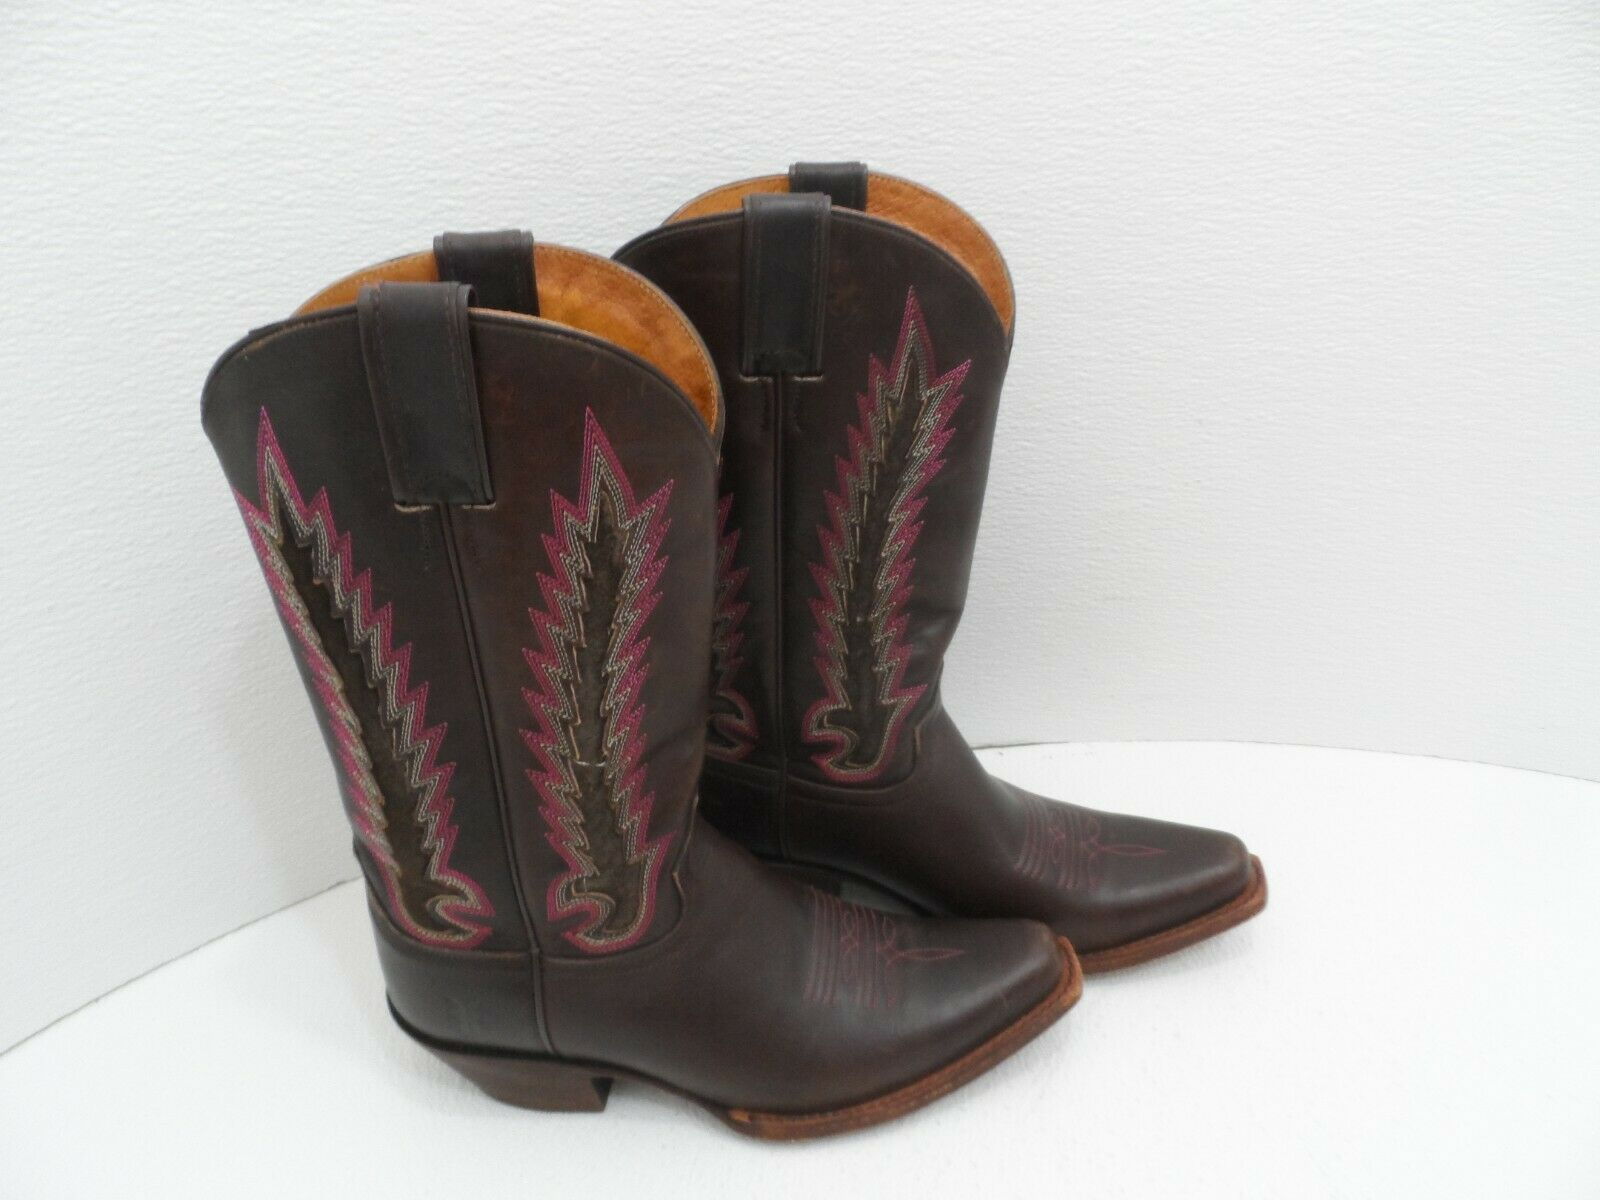 Frye Women's Brown Embroidered Leather Boots, Size 8 B - - - VGC 0ce206